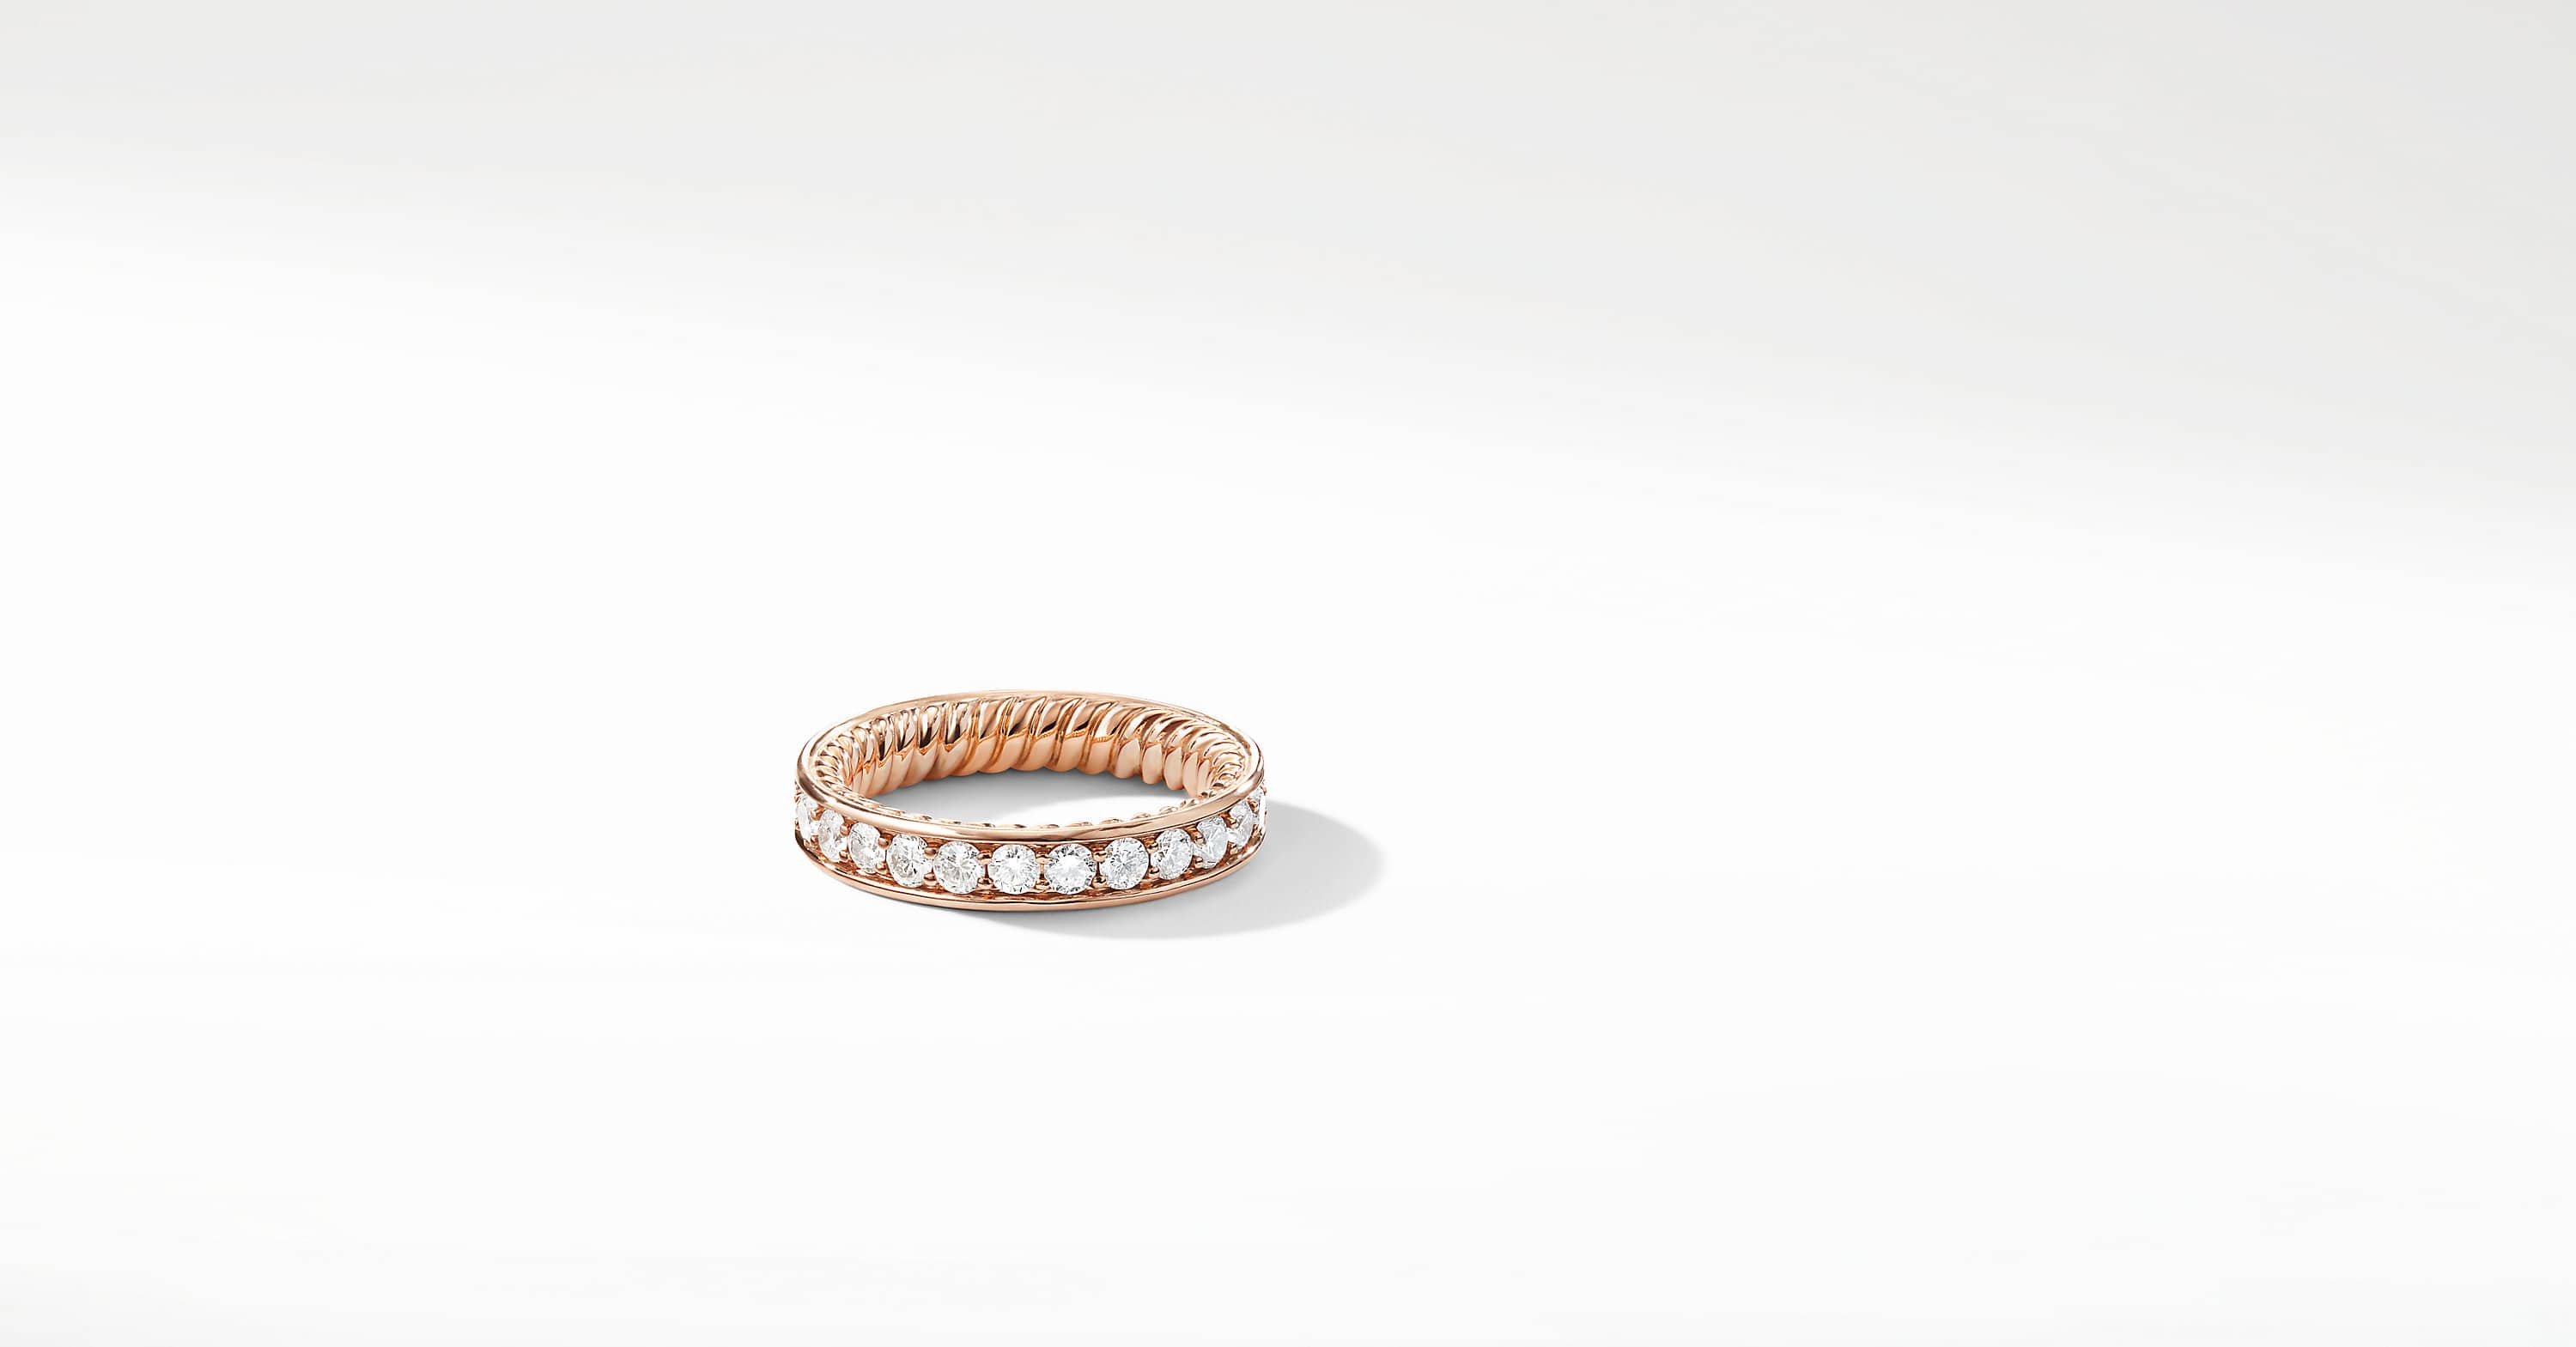 DY Eden Eternity Wedding Band with Diamonds in 18K Rose Gold, 3.8mm